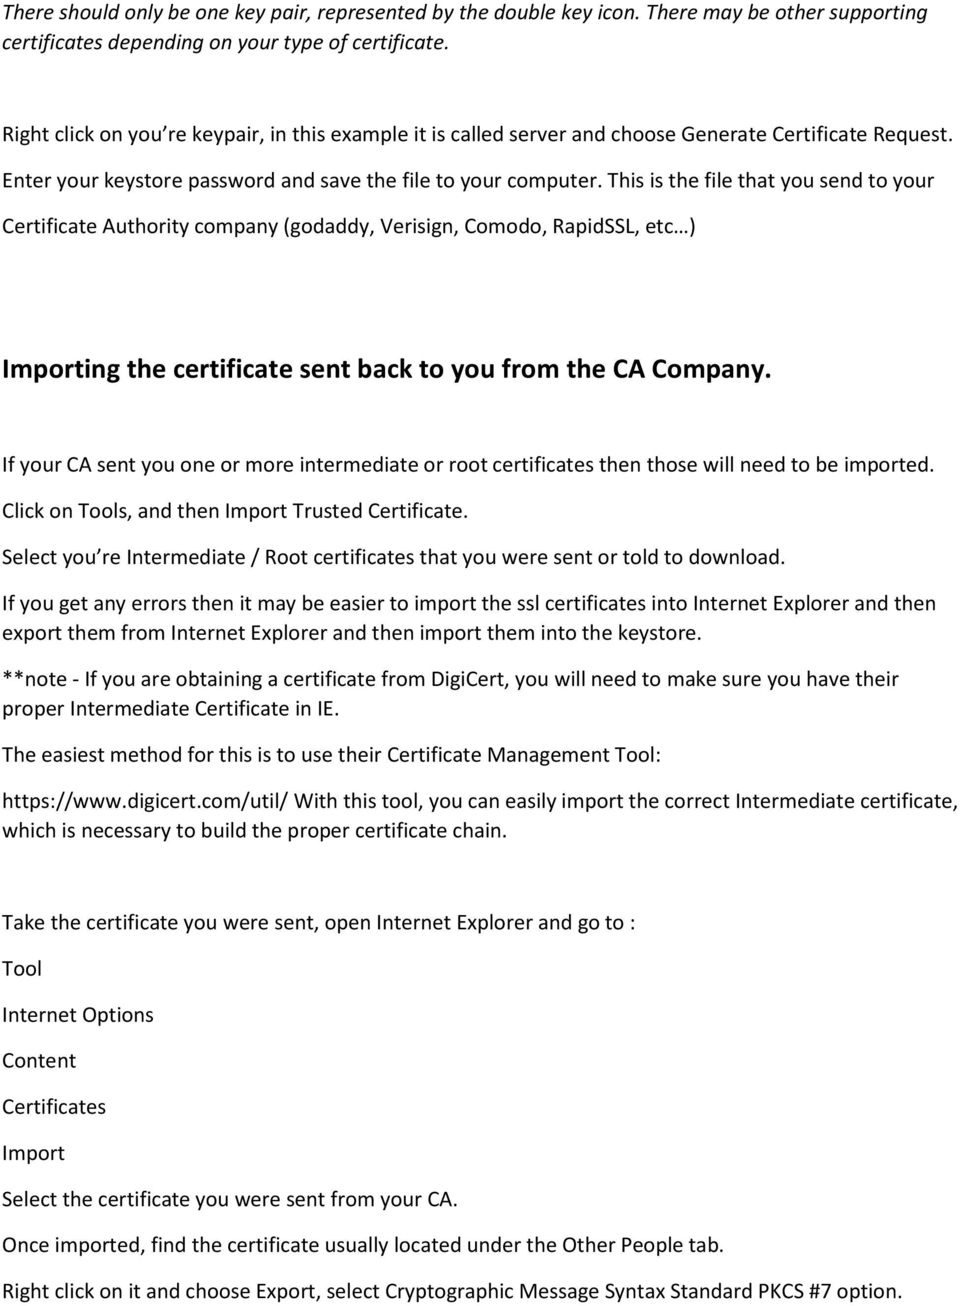 This is the file that you send to your Certificate Authority company (godaddy, Verisign, Comodo, RapidSSL, etc ) Importing the certificate sent back to you from the CA Company.